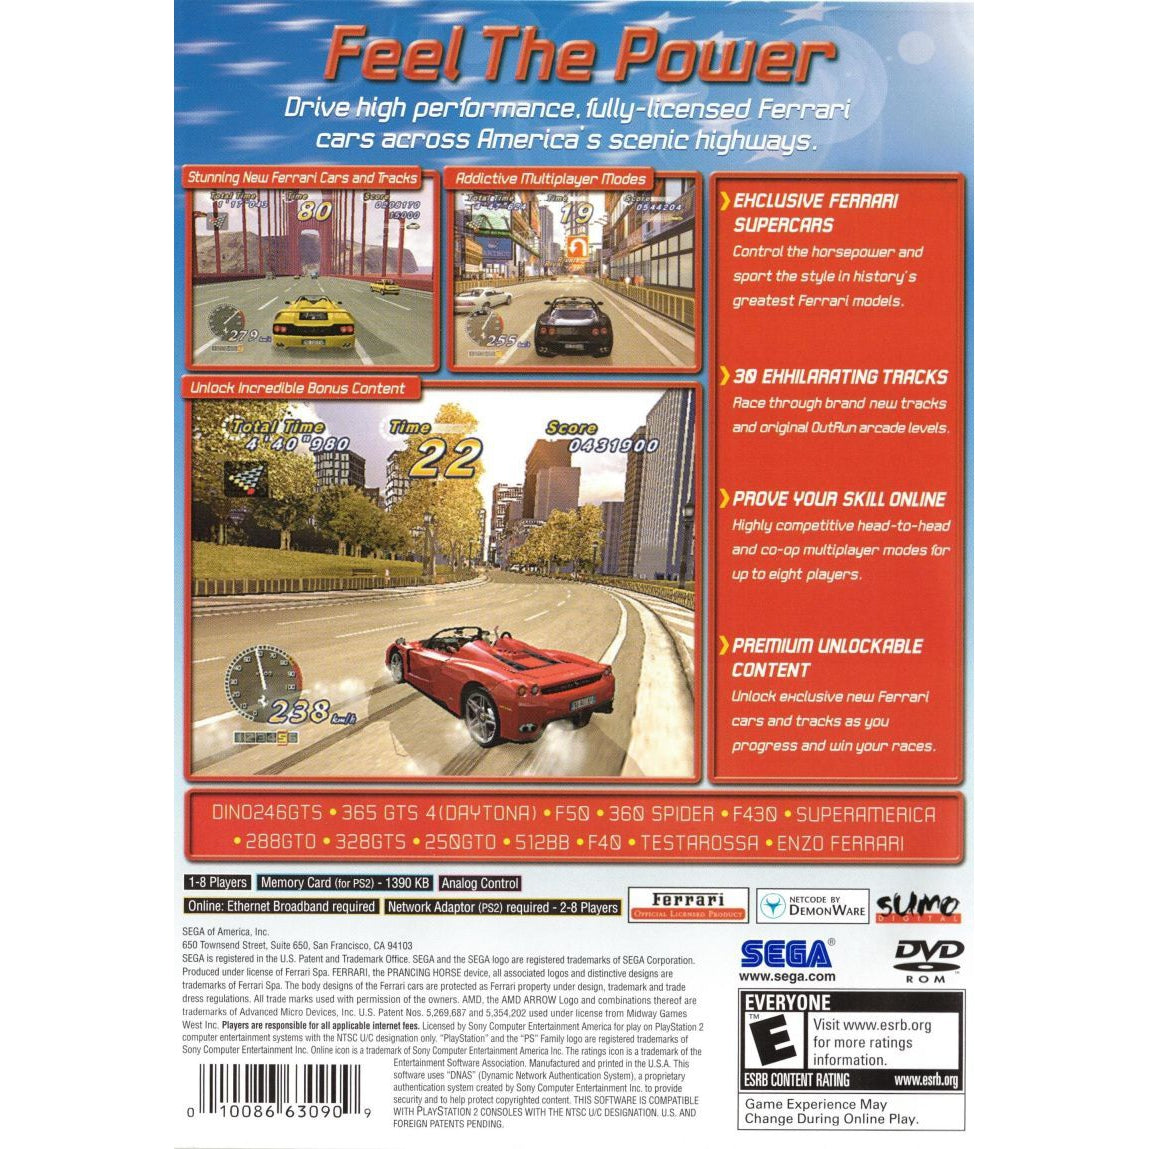 OutRun 2006: Coast 2 Coast - PlayStation 2 (PS2) Game Complete - YourGamingShop.com - Buy, Sell, Trade Video Games Online. 120 Day Warranty. Satisfaction Guaranteed.